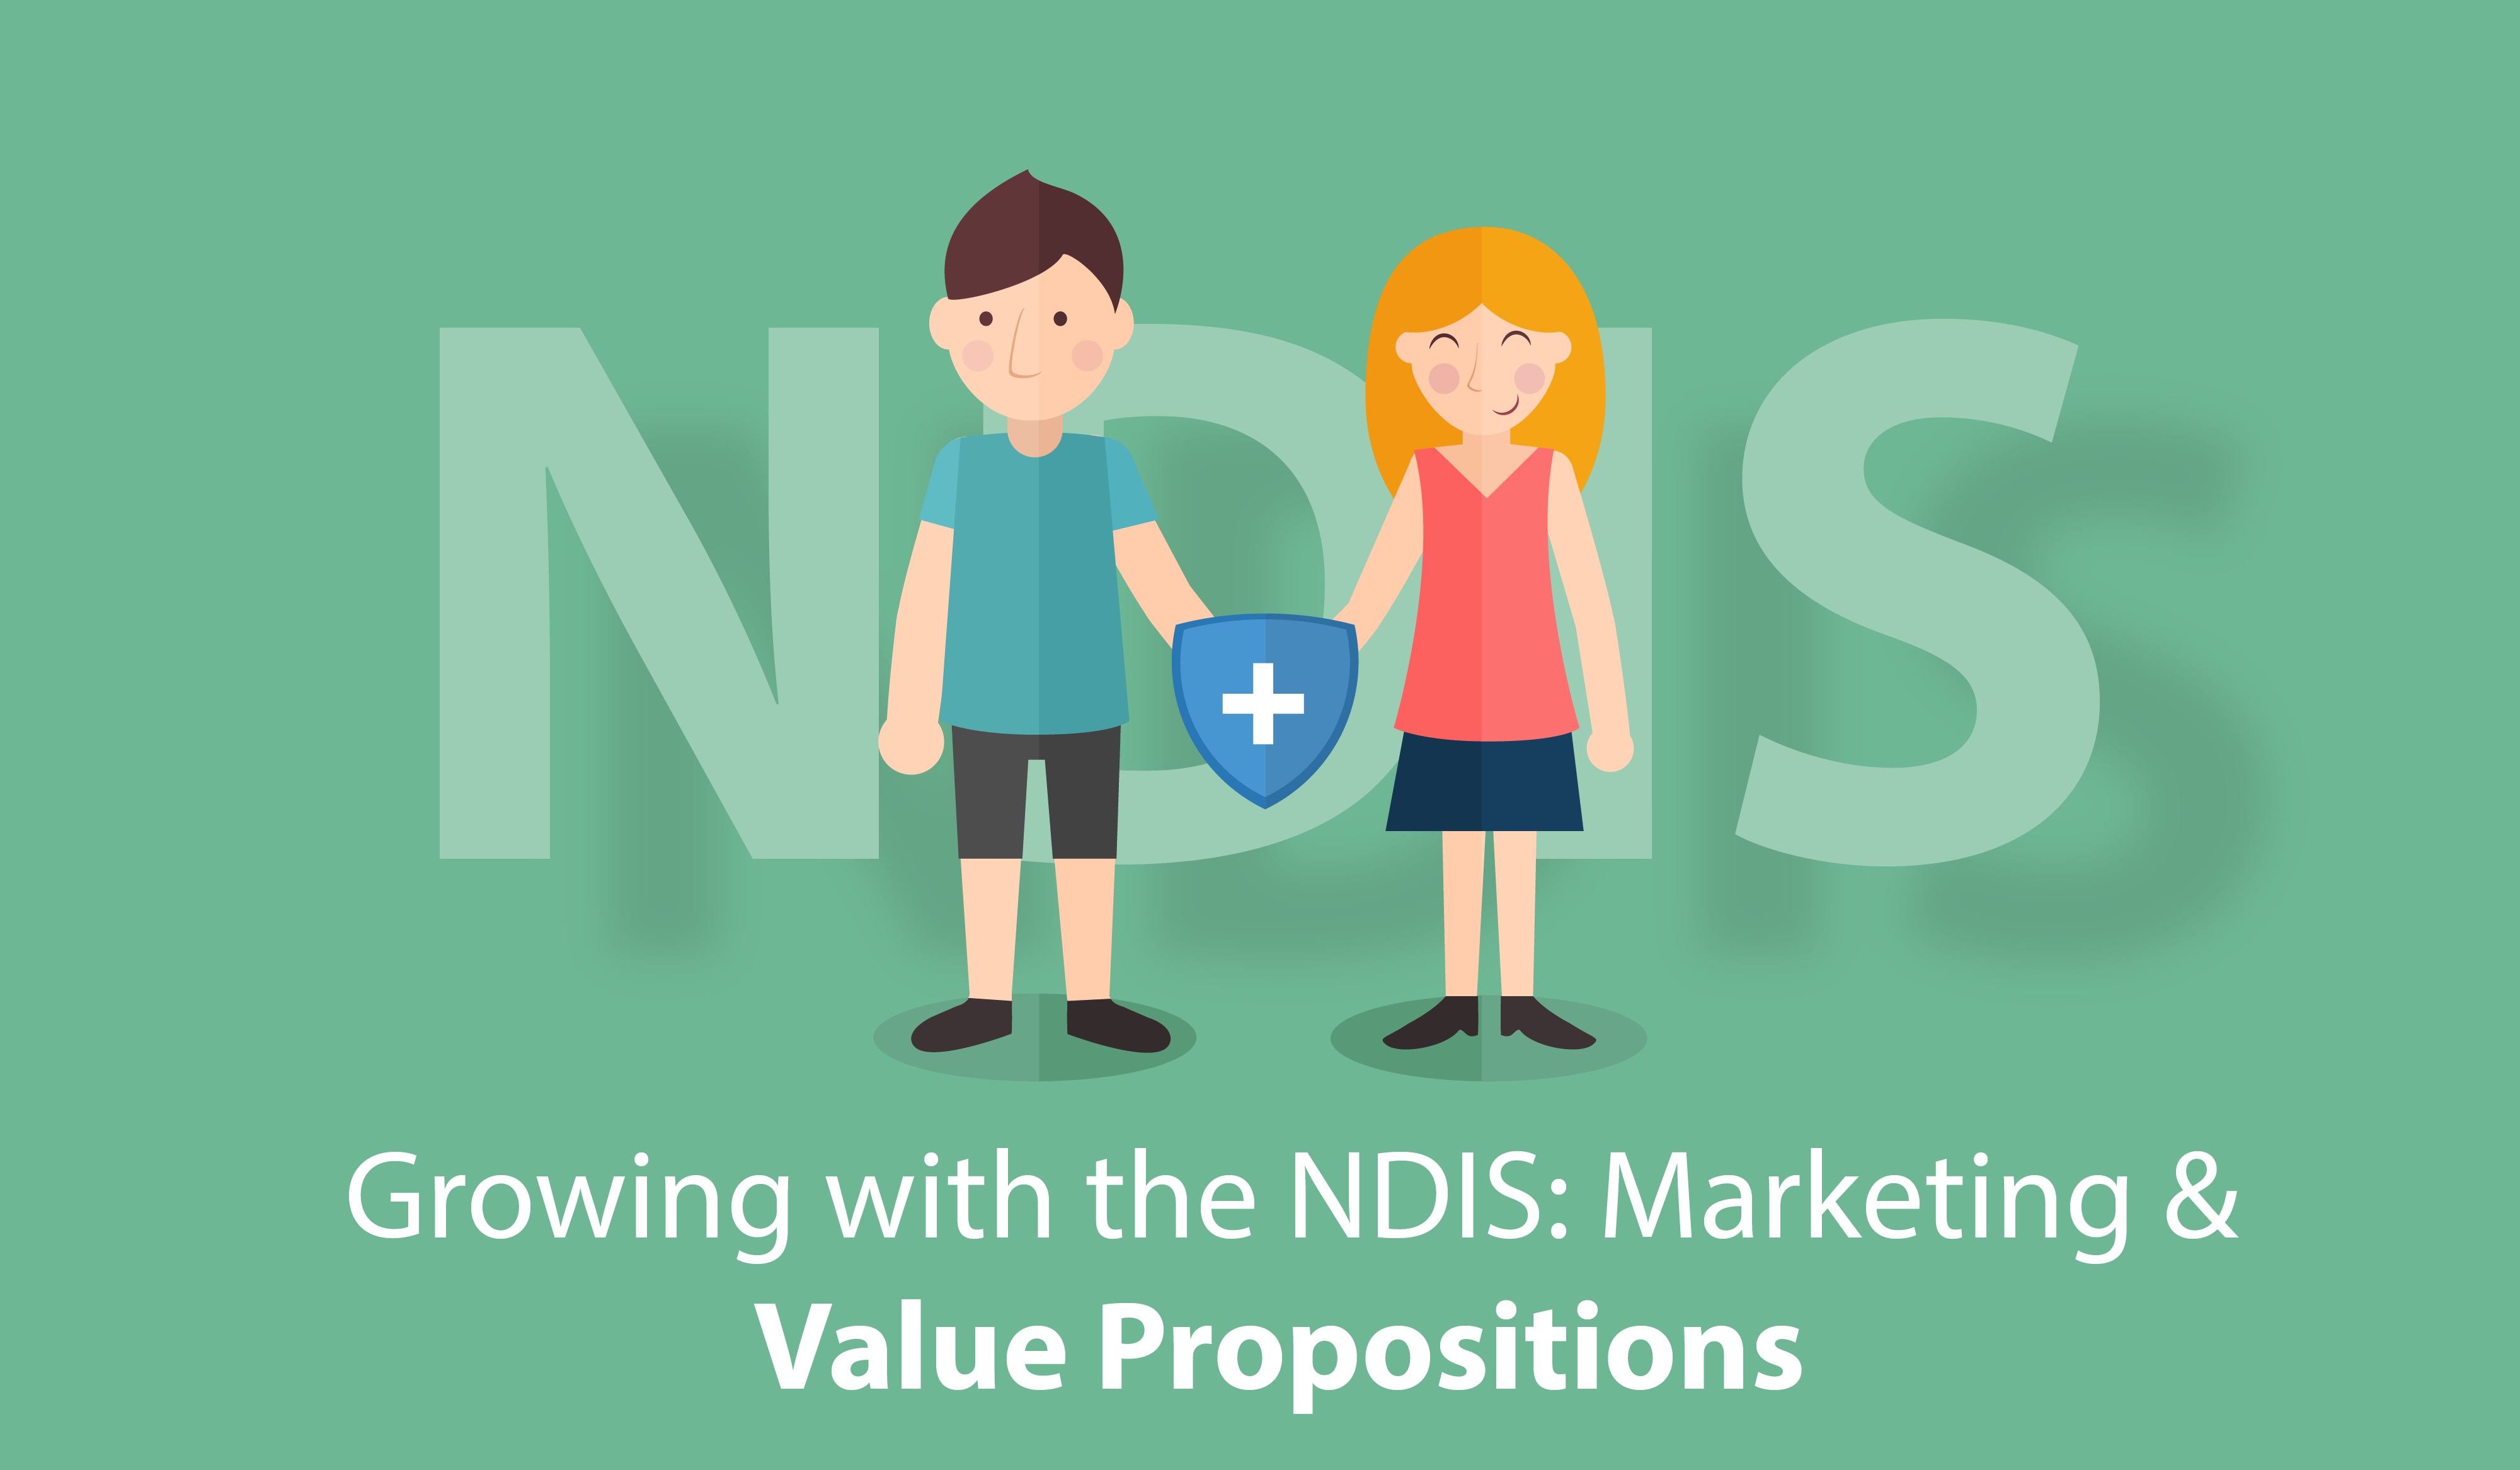 Attracting business under the NDIS: Value Propositions